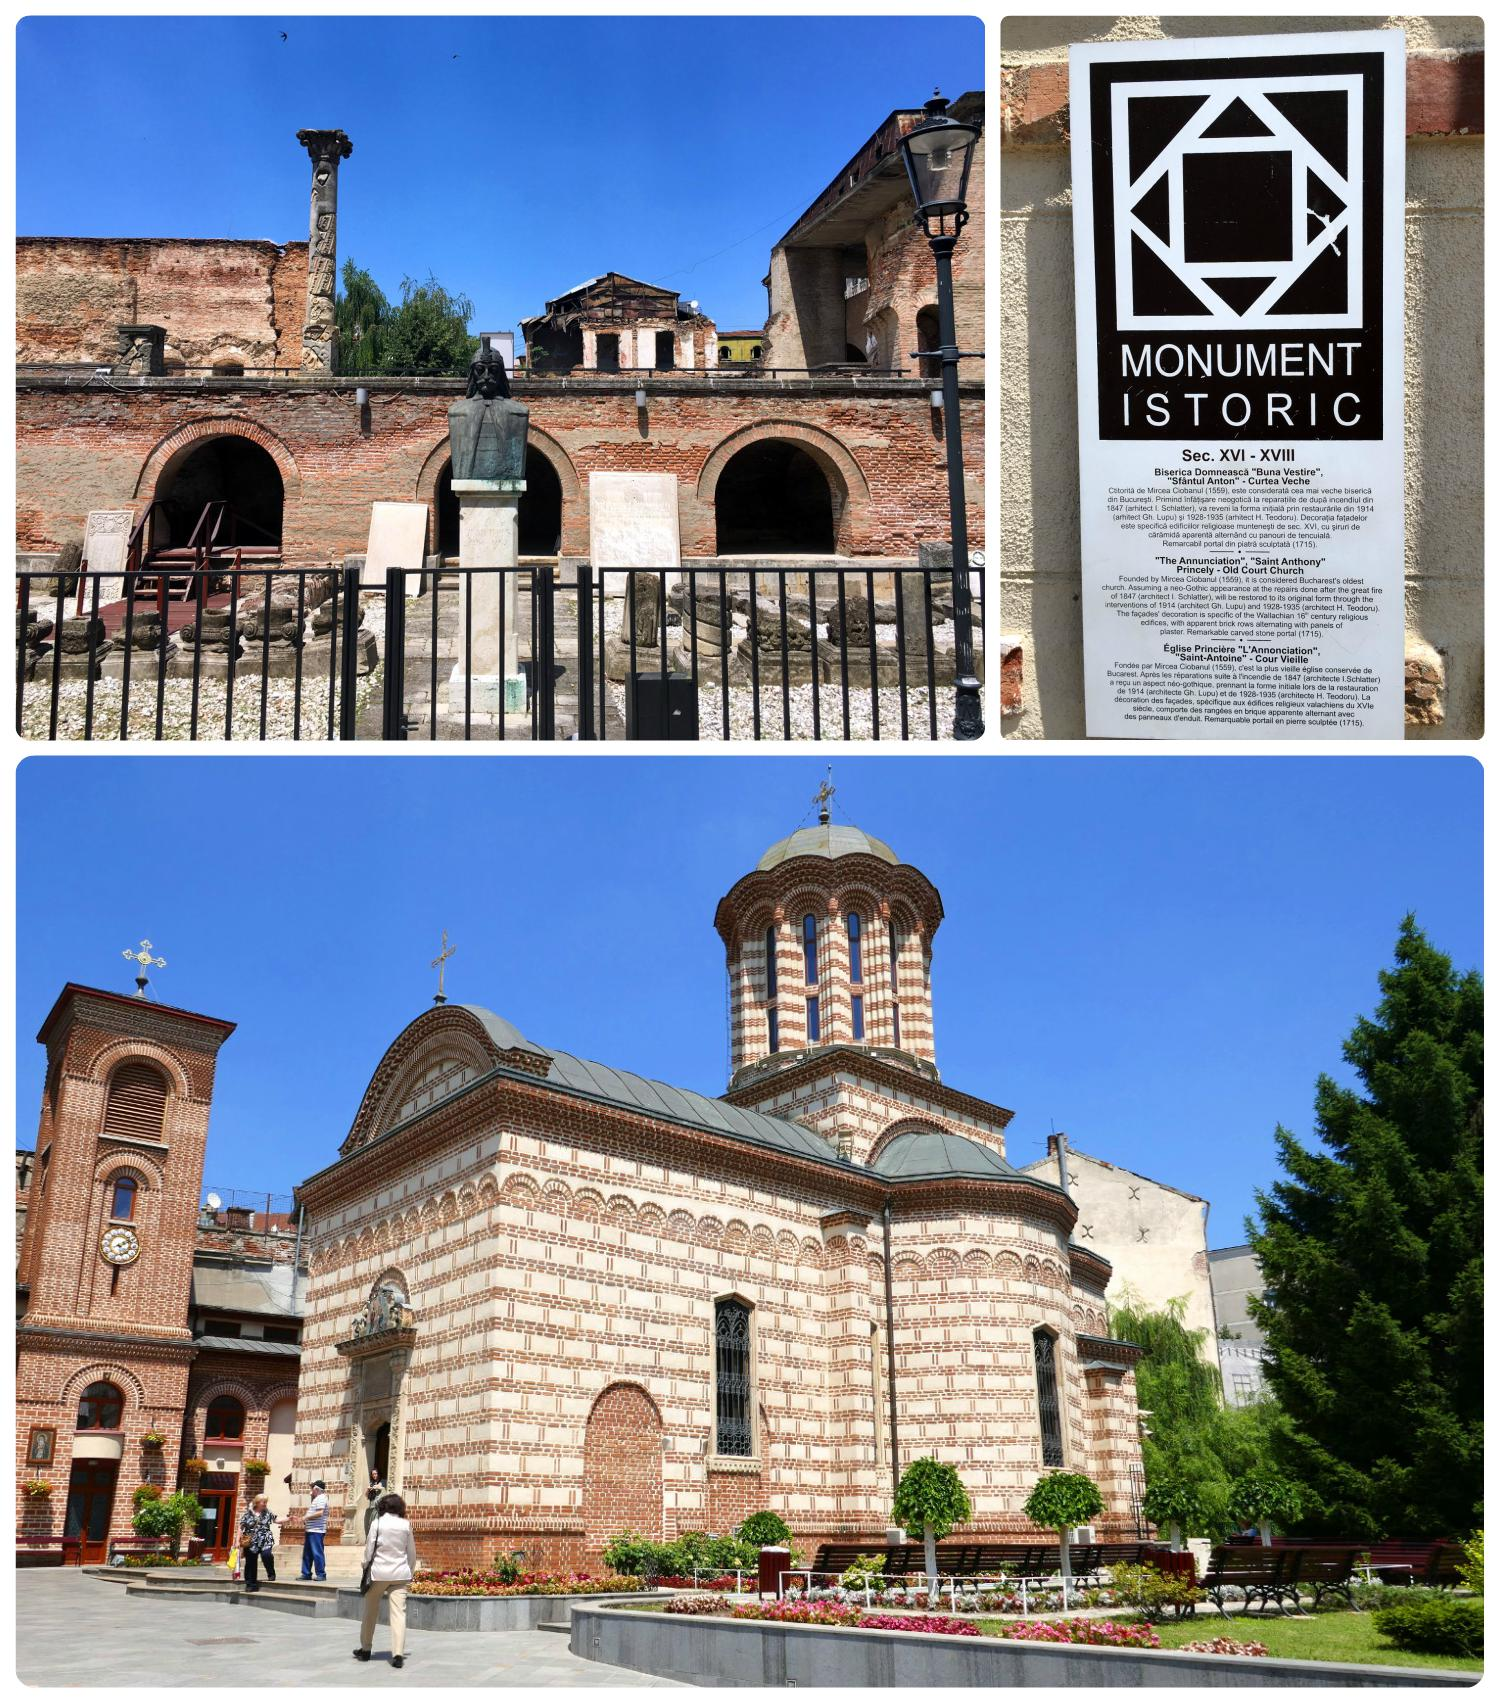 The history of Old Princely Court is fascinating! While you're visiting, be sure to walk just a short distance down the street to visit the beautiful Sfântul Anton Church. Don't miss the 'Monument Istoric' signs that provide an overview on the history of the site.